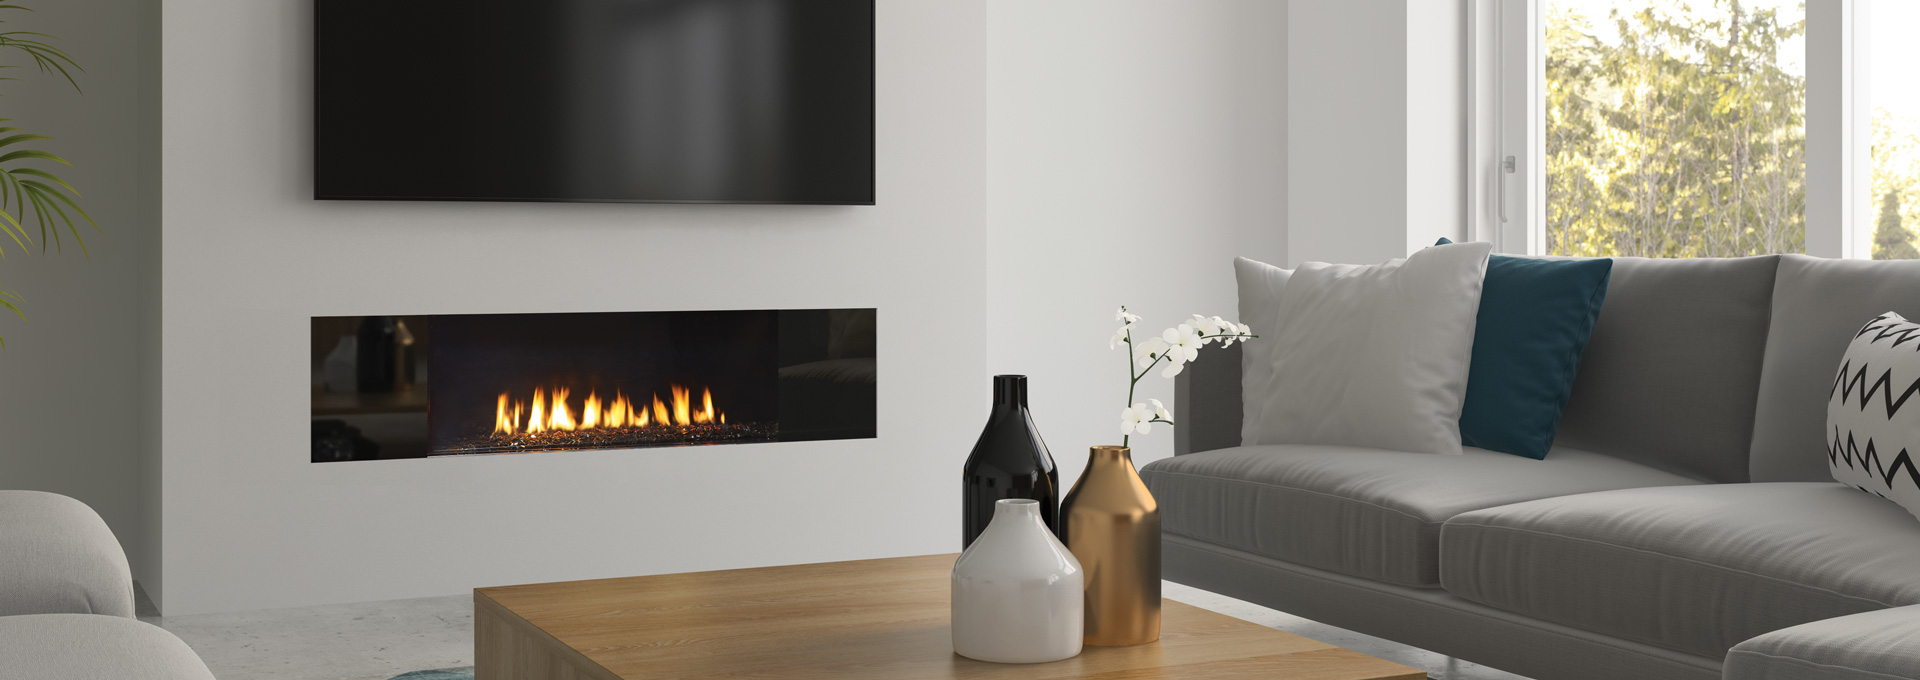 Regency Gas Fireplace – City Series  – New York View 40 and 72